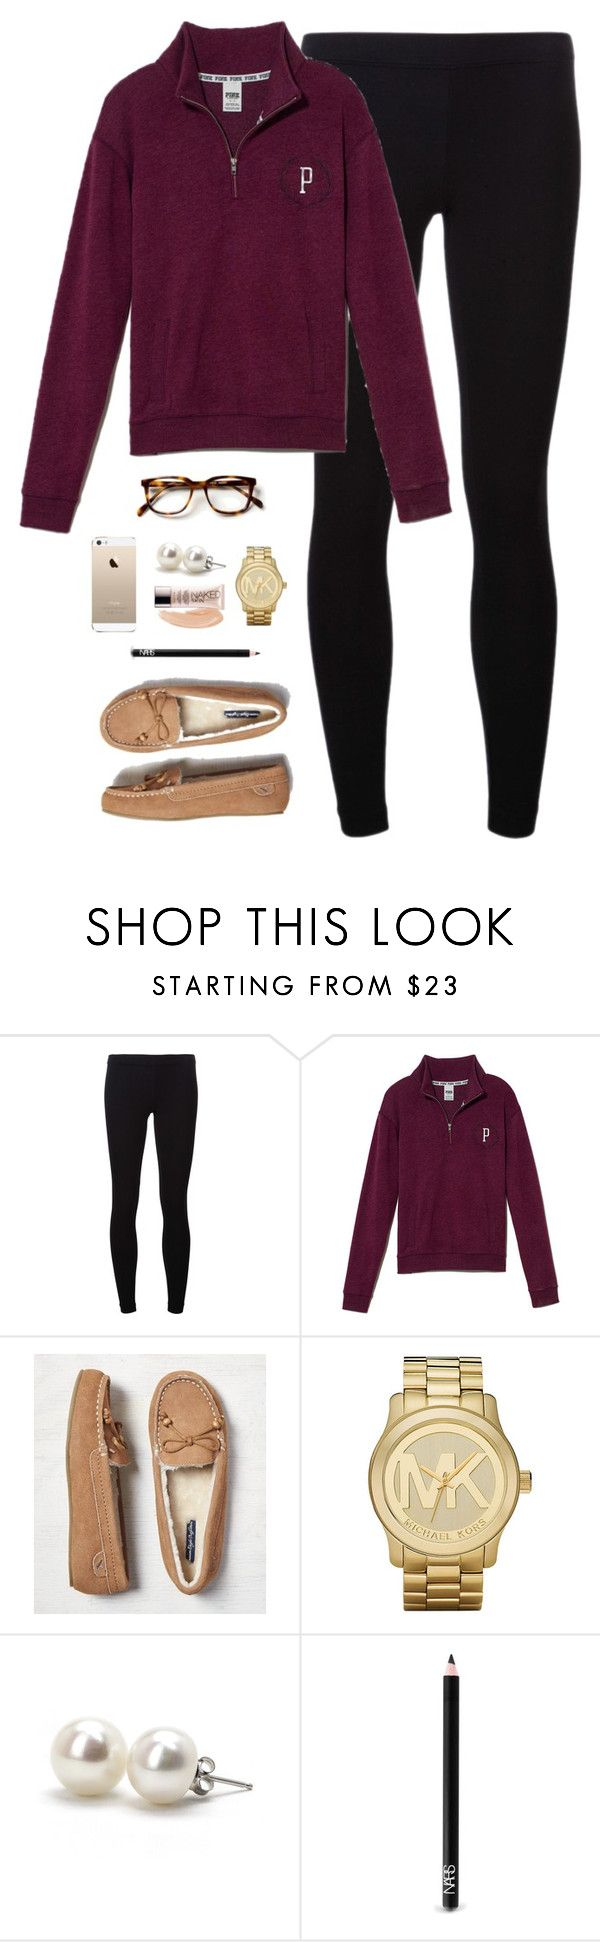 """lazy Saturday"" by classically-preppy ❤ liked on Polyvore featuring James Perse, Victoria's Secret PINK, American Eagle Outfitters, Michael Kors, Bounkit, NARS Cosmetics and Urban Decay"